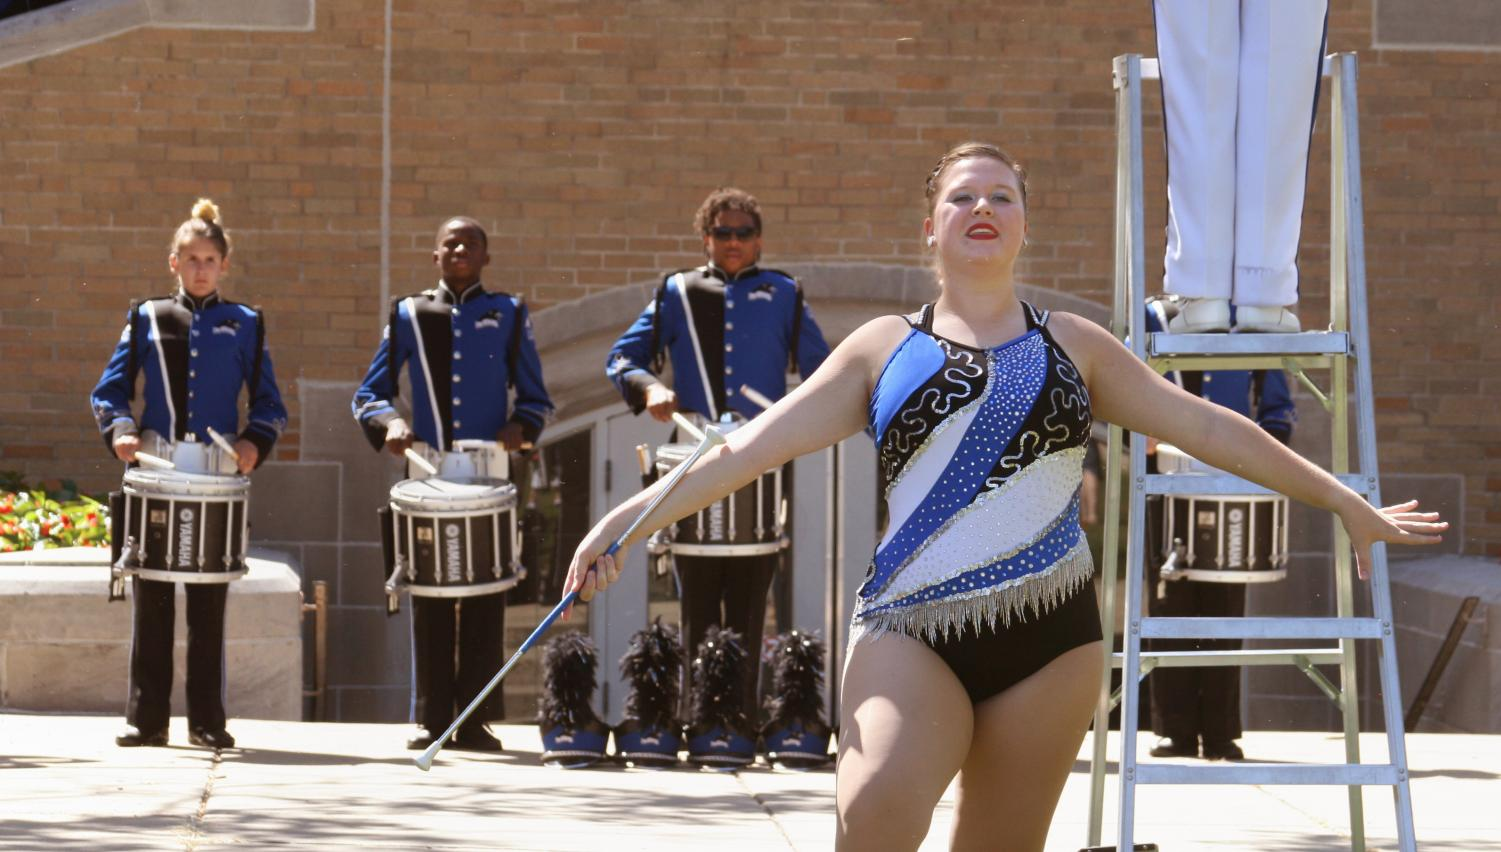 Cassie McCleery, a senior majoring in family consumer science with a focus in education, twirls during a Library Quad performance before a September football game.